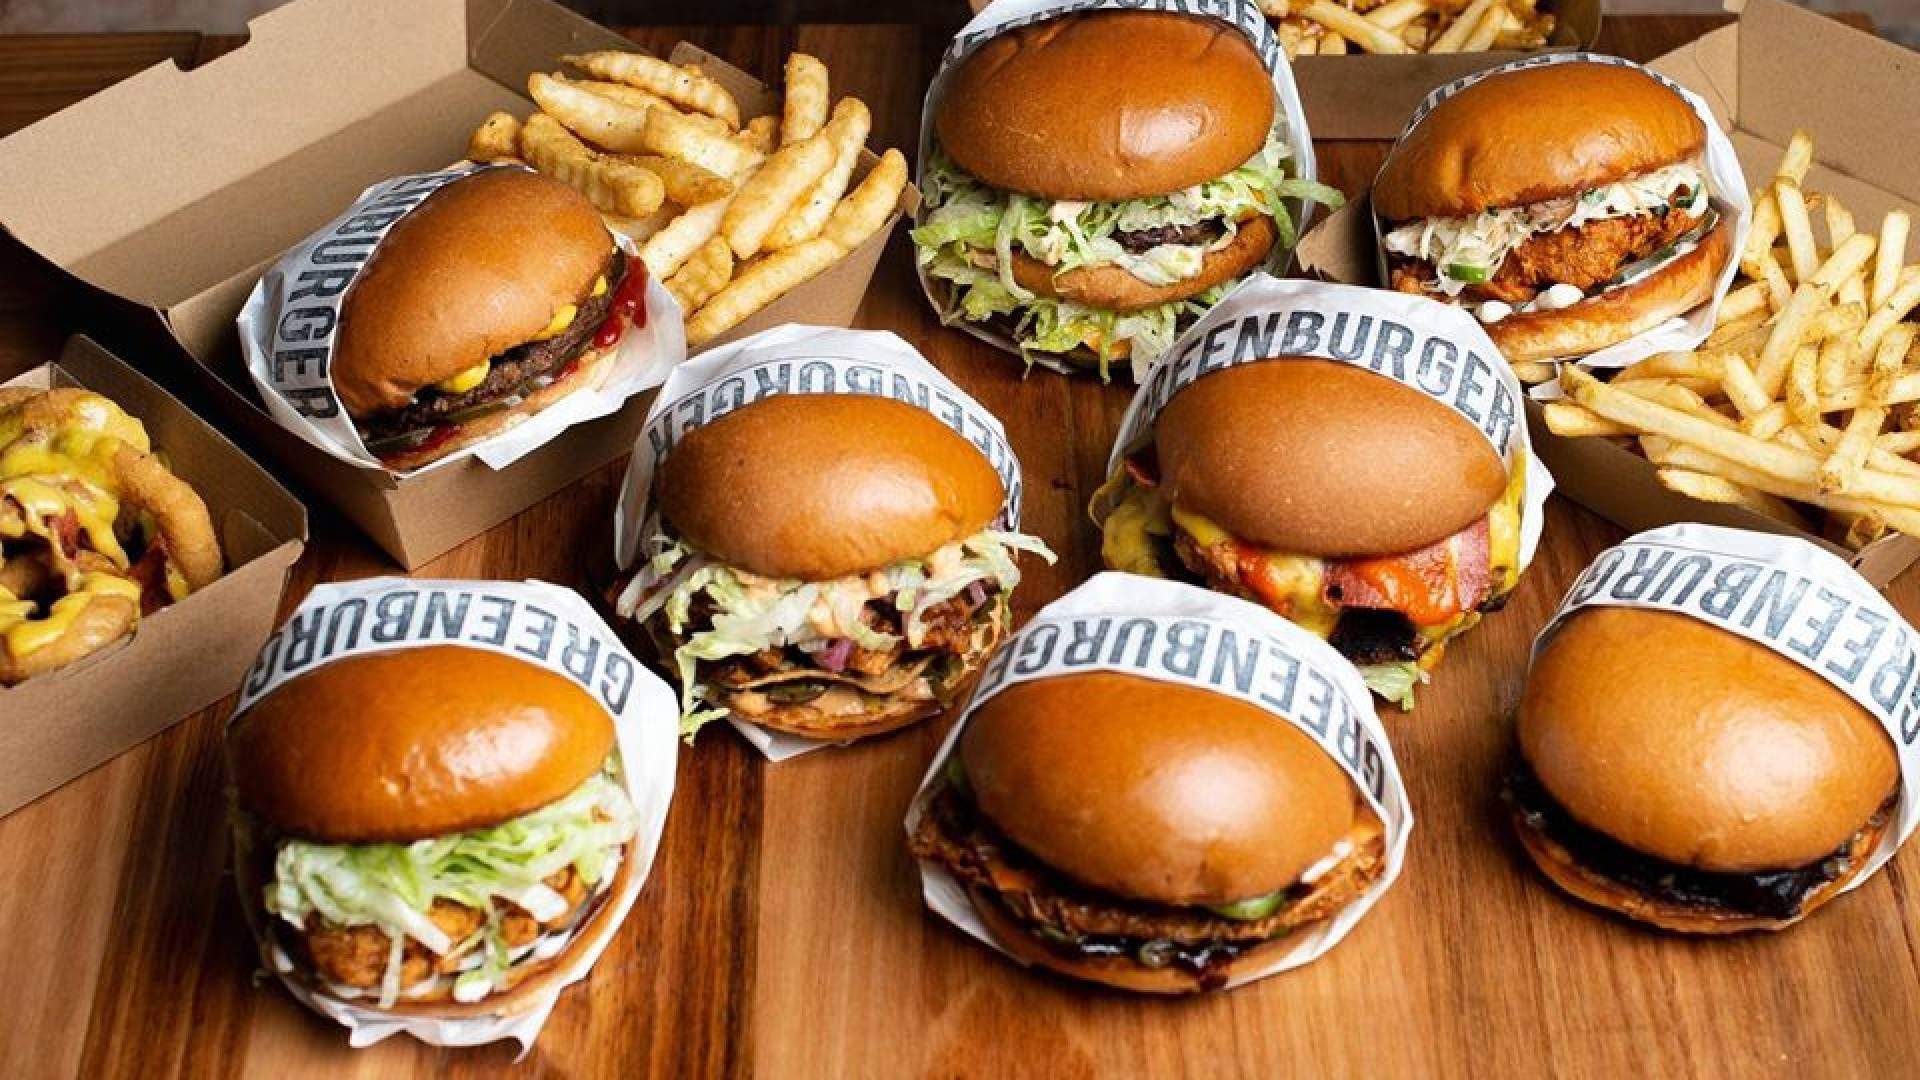 The best vegan burgers in Australia as voted by you!